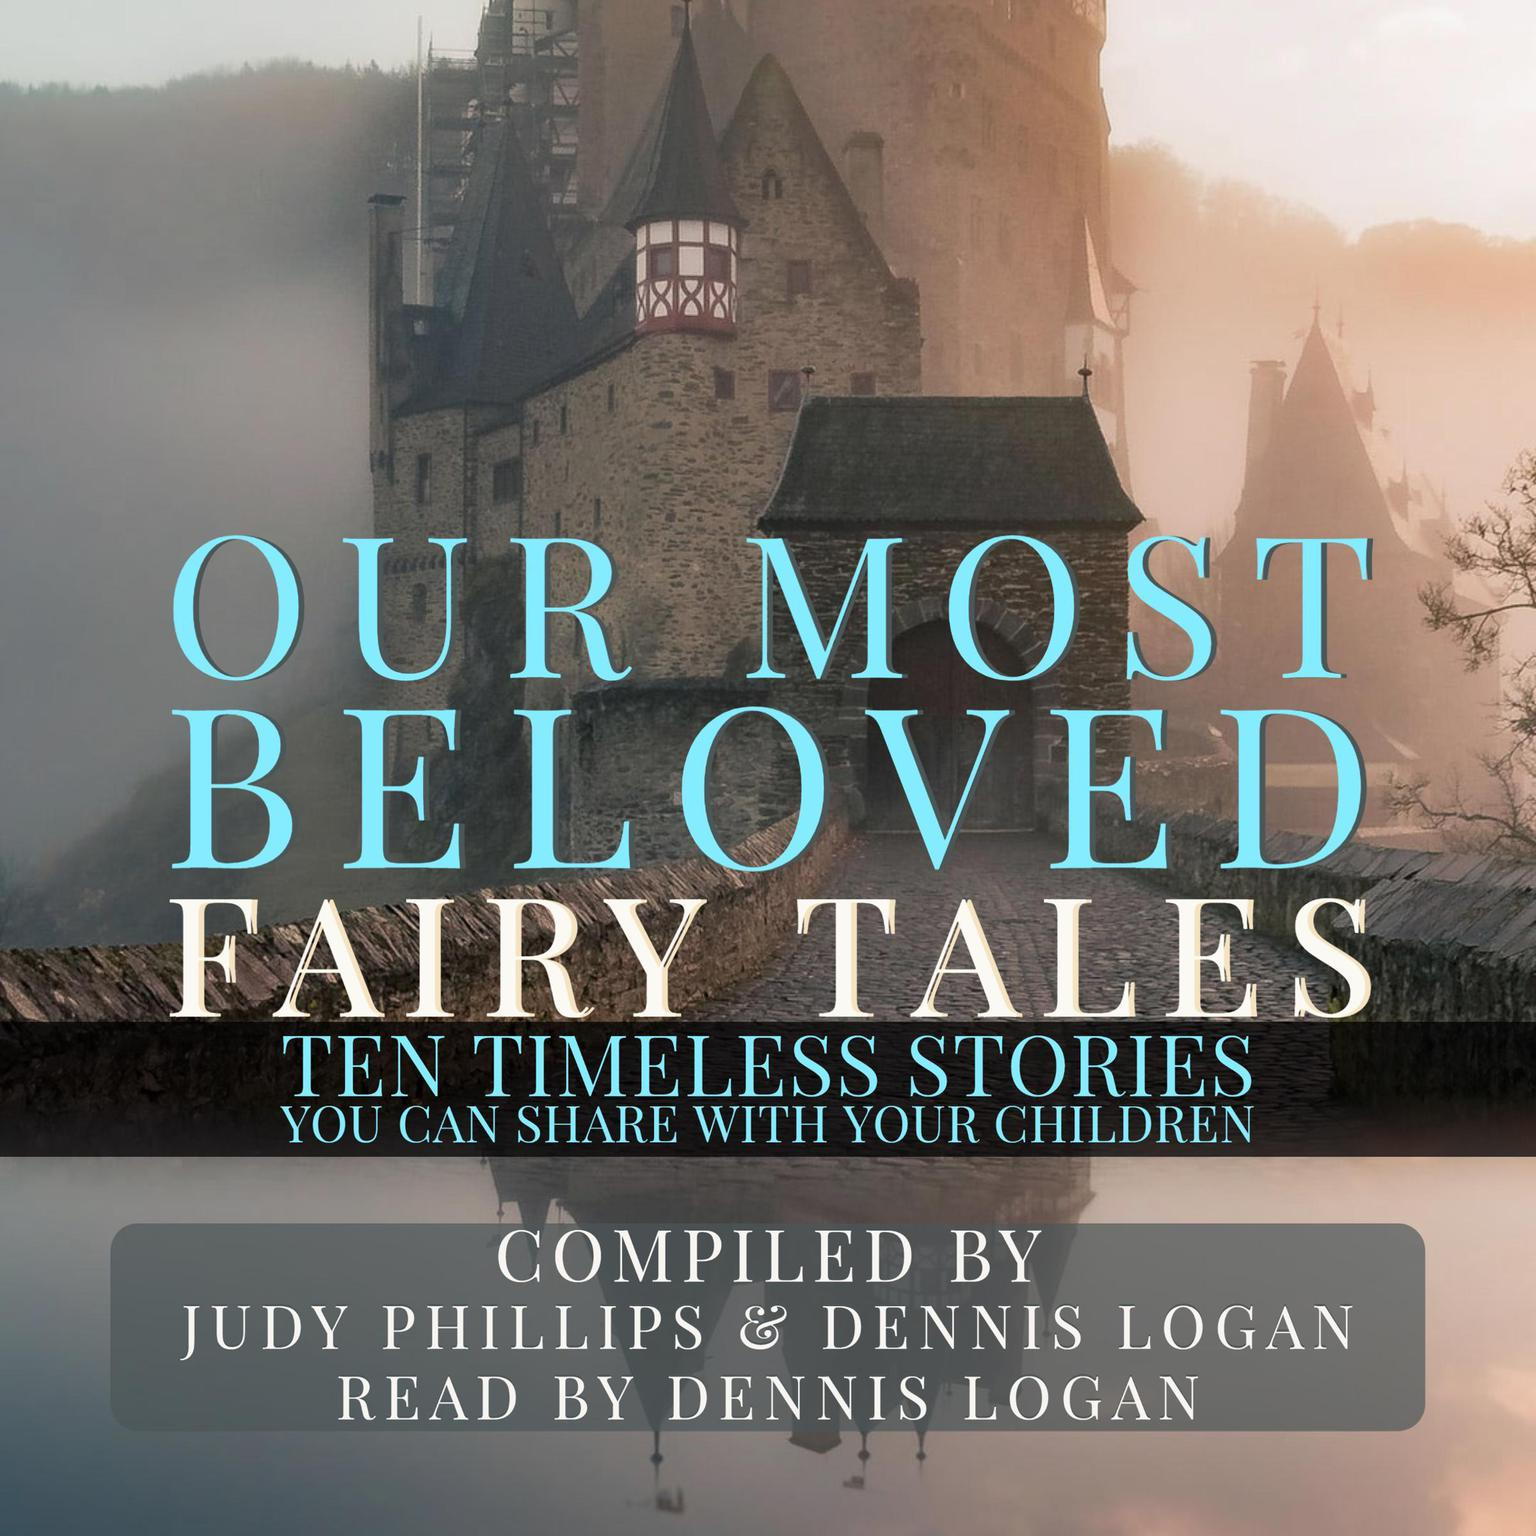 Our Most Beloved Fairy Tales: 10 Timeless Stories You Can Share With Your Children Audiobook, by Judy Phillips